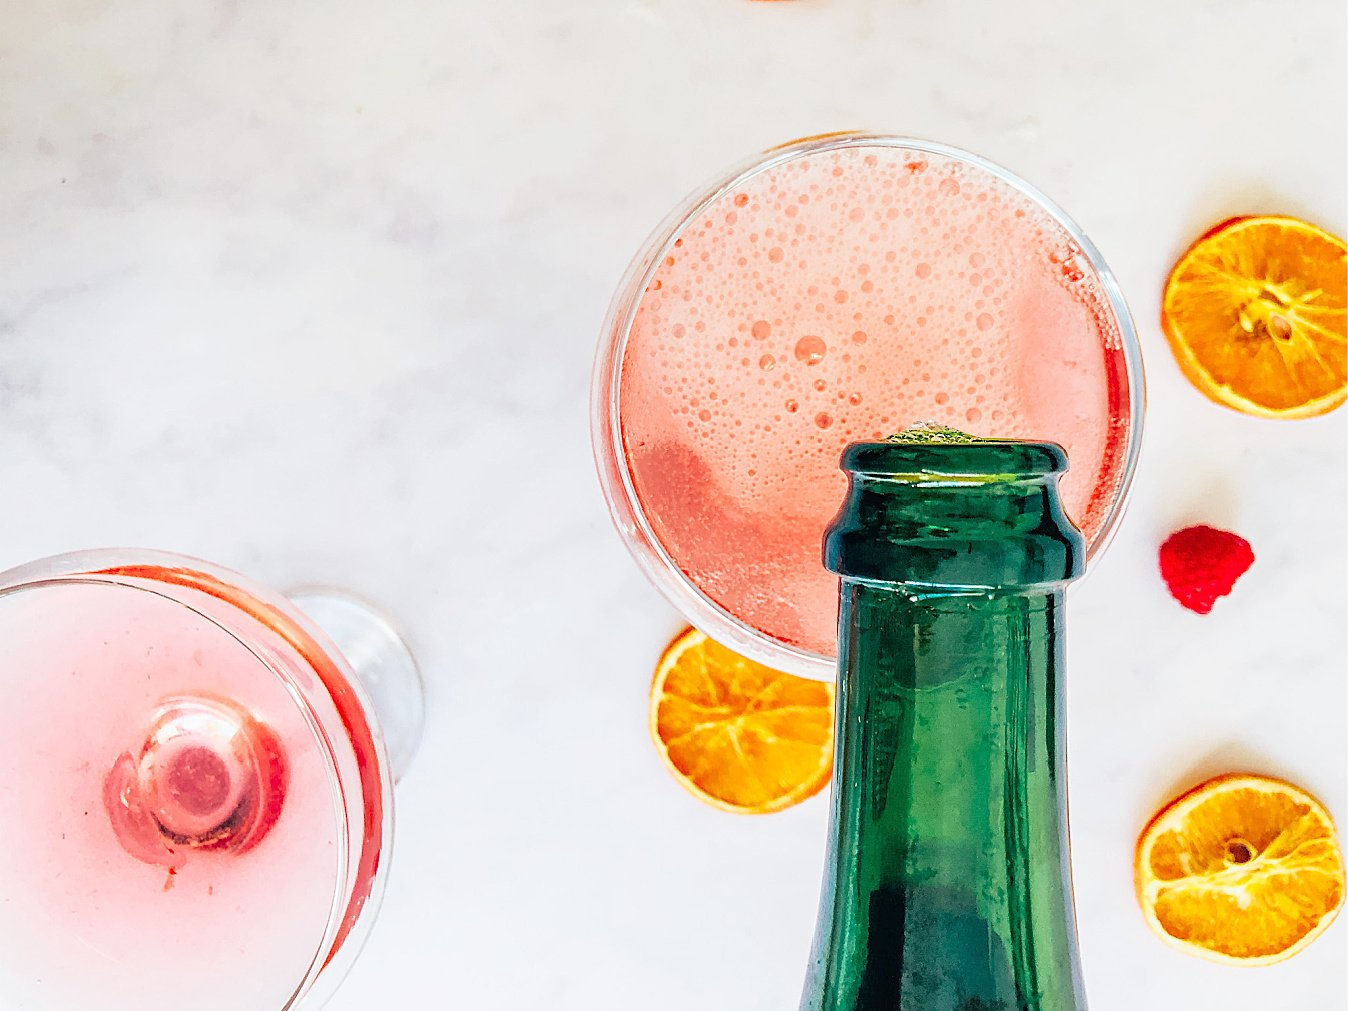 Add Prosecco to the gin and raspberry mix